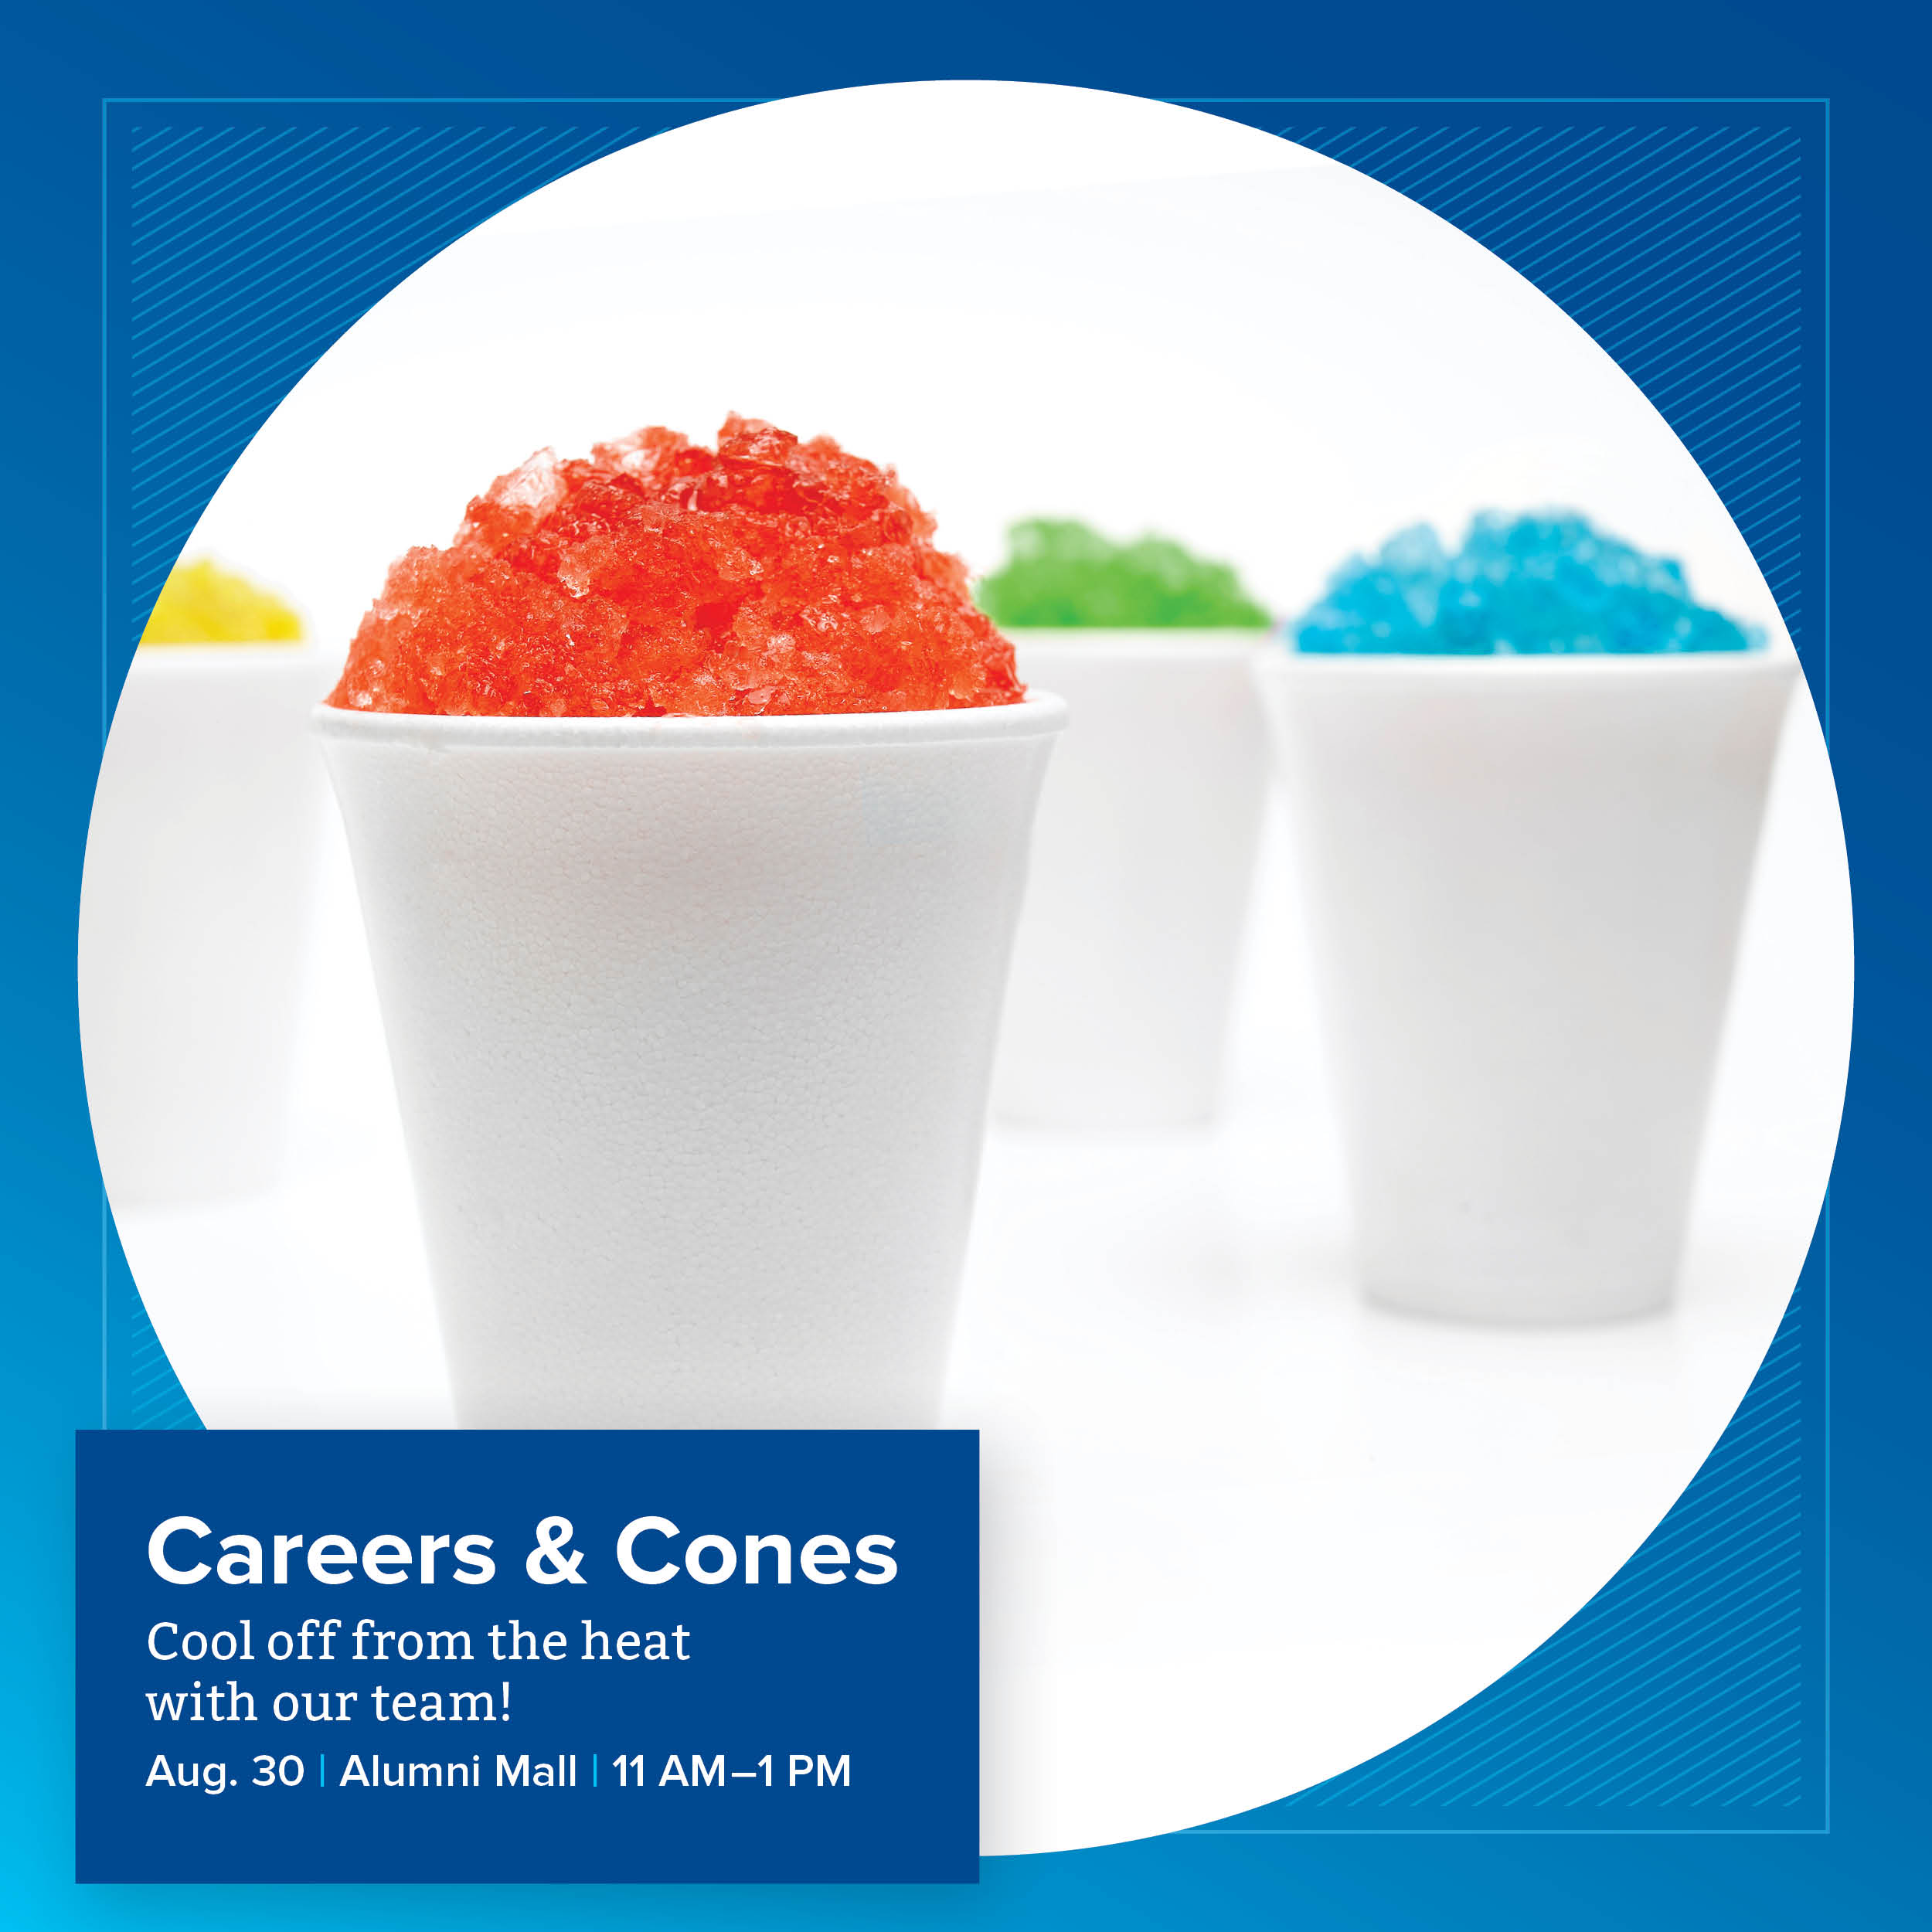 Career & Cones. Cool off from the heat with our team! August 30th. Alumni Mall. 11 AM - 1 PM